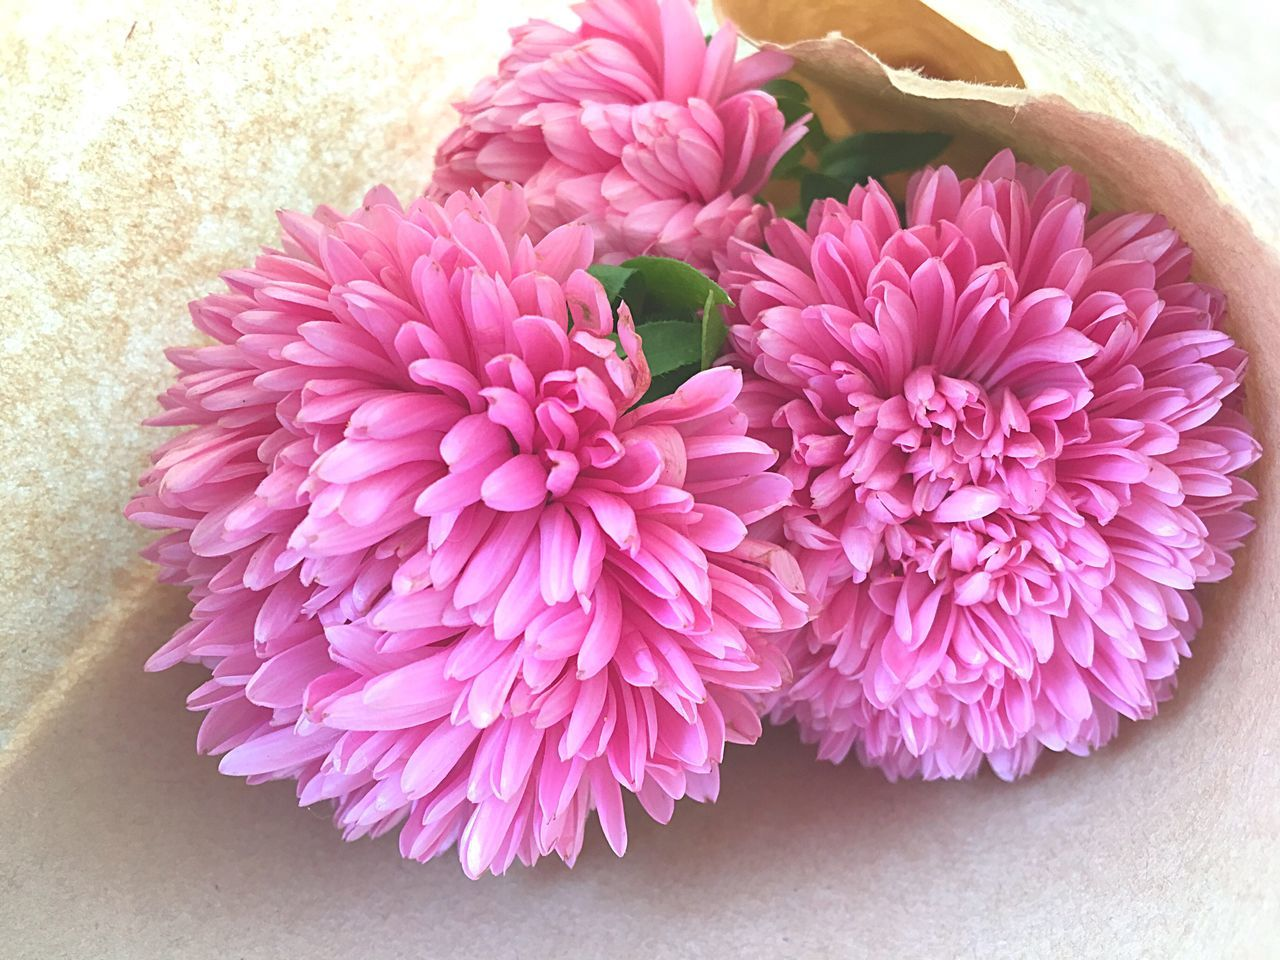 flower, petal, freshness, pink color, beauty in nature, no people, flower head, nature, arrangement, close-up, indoors, fragility, day